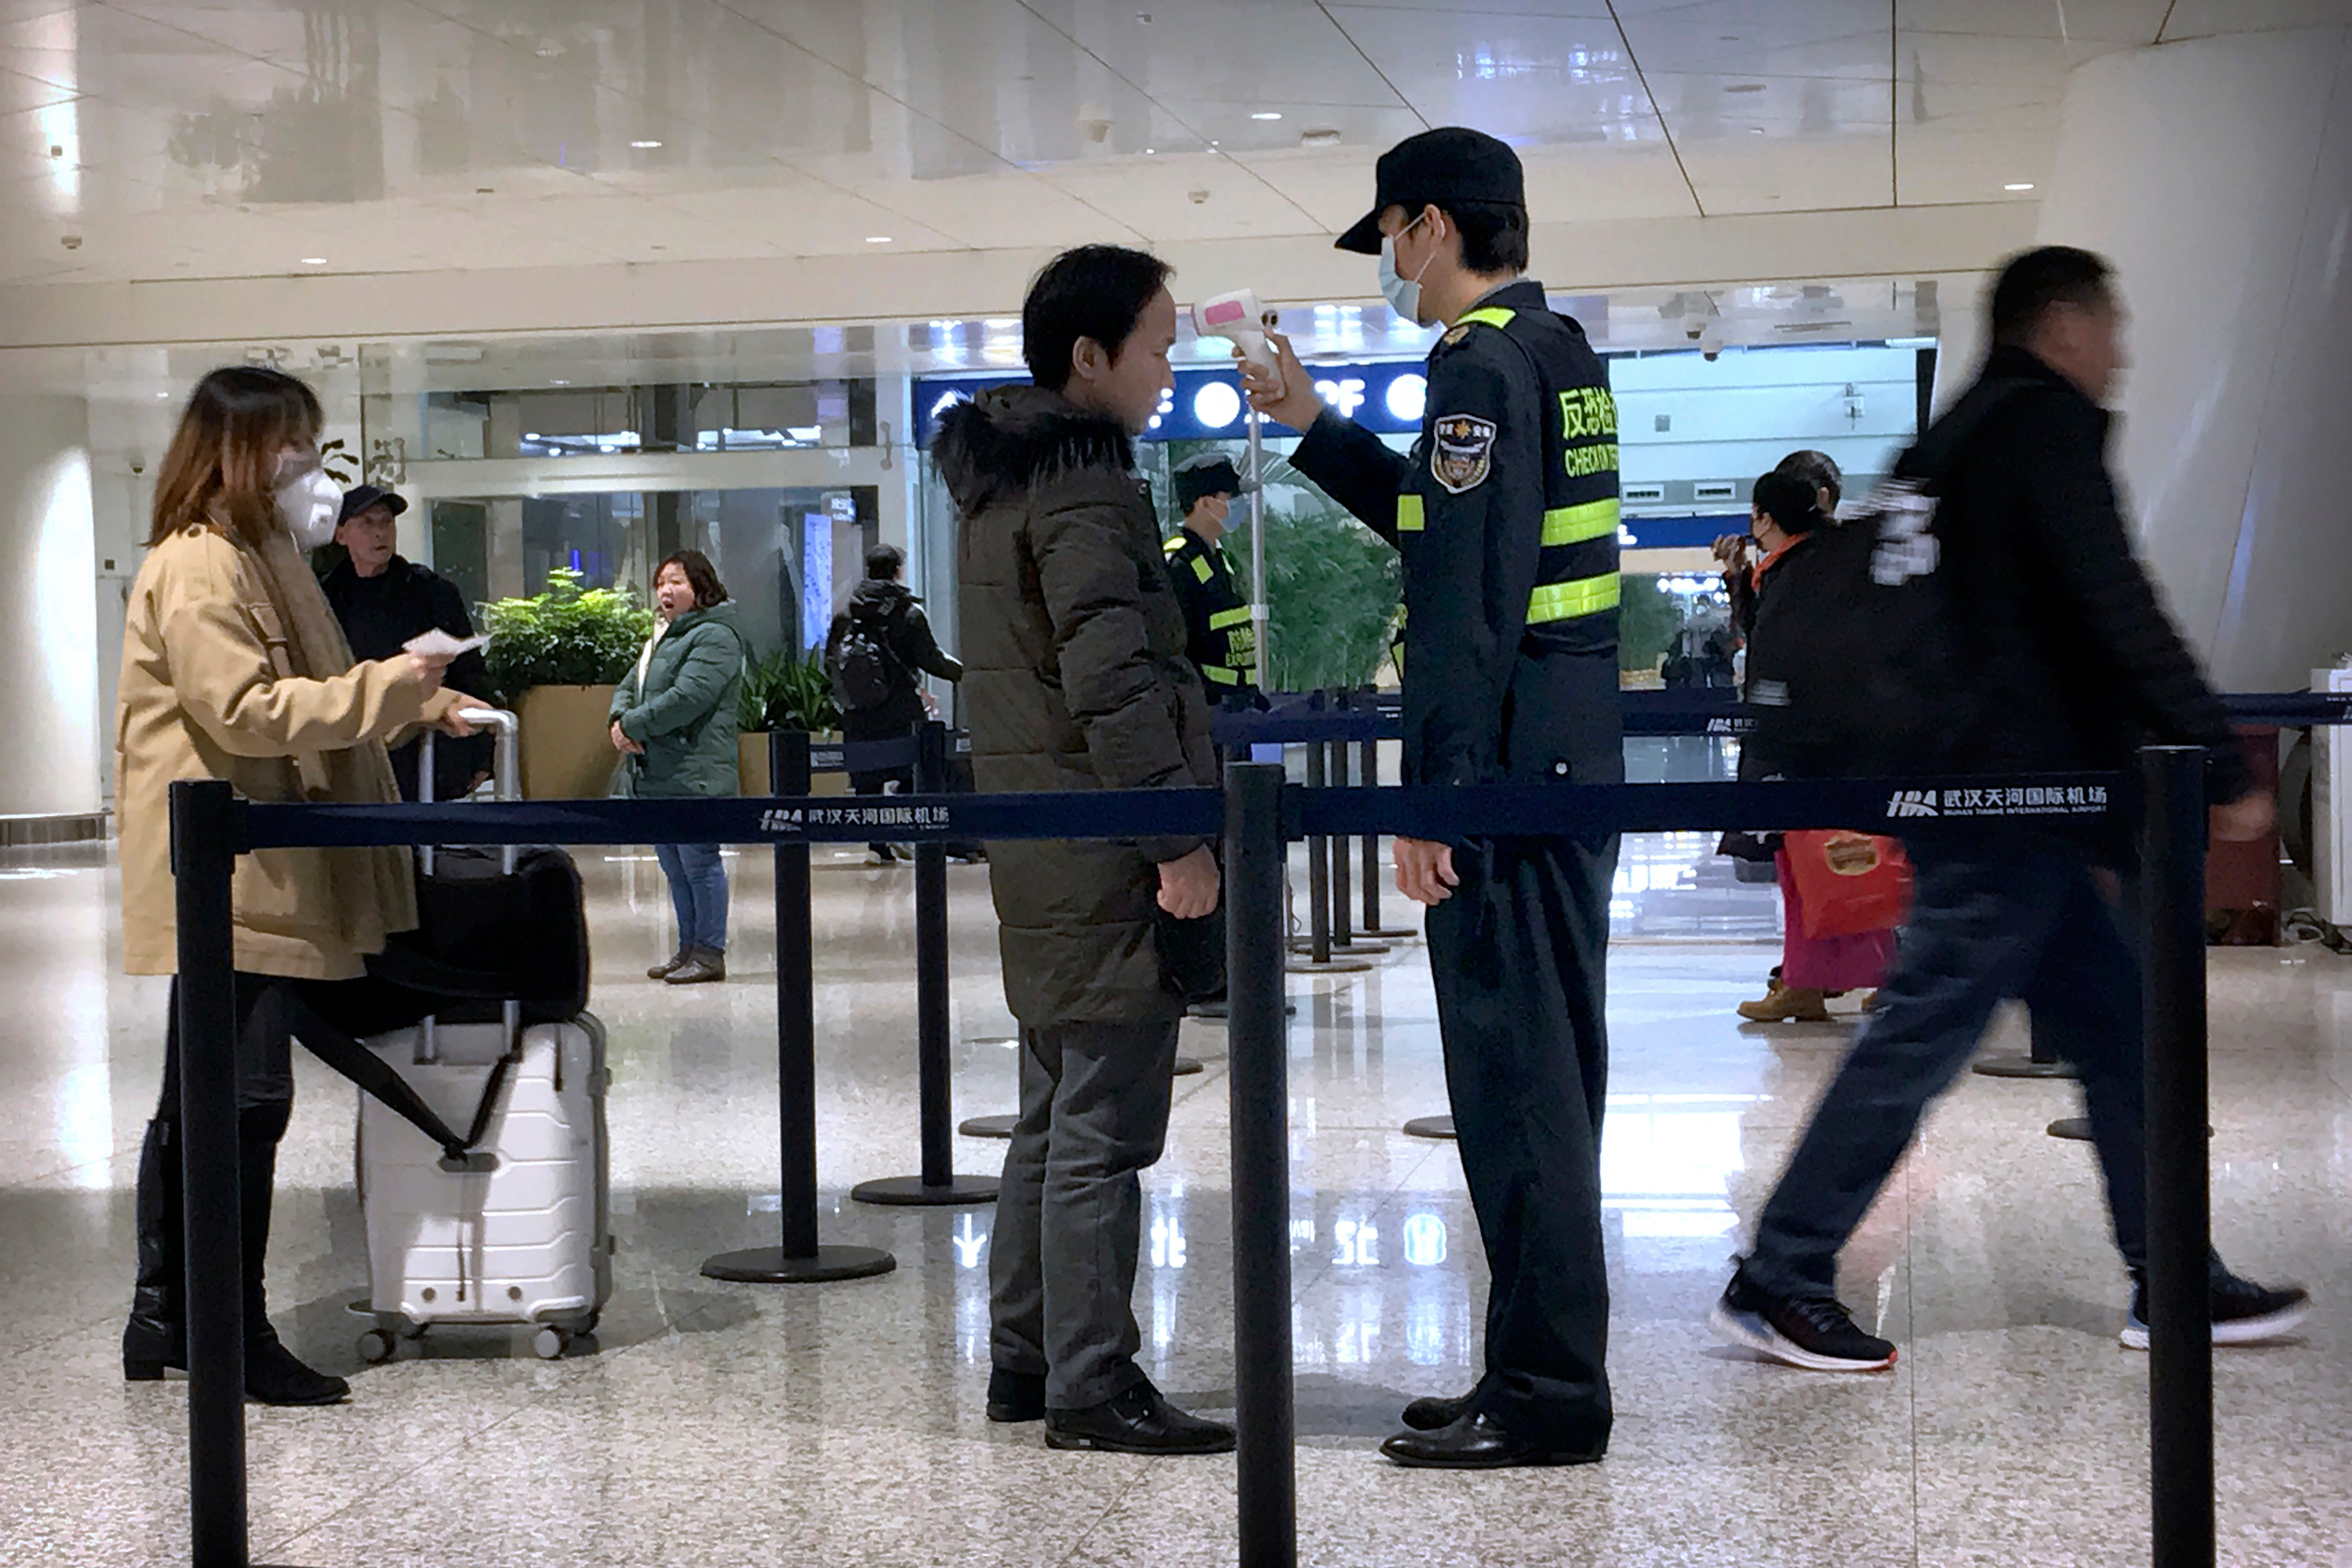 An official uses an infrared thermometer on a traveller at an airport in hard-hit Wuhan